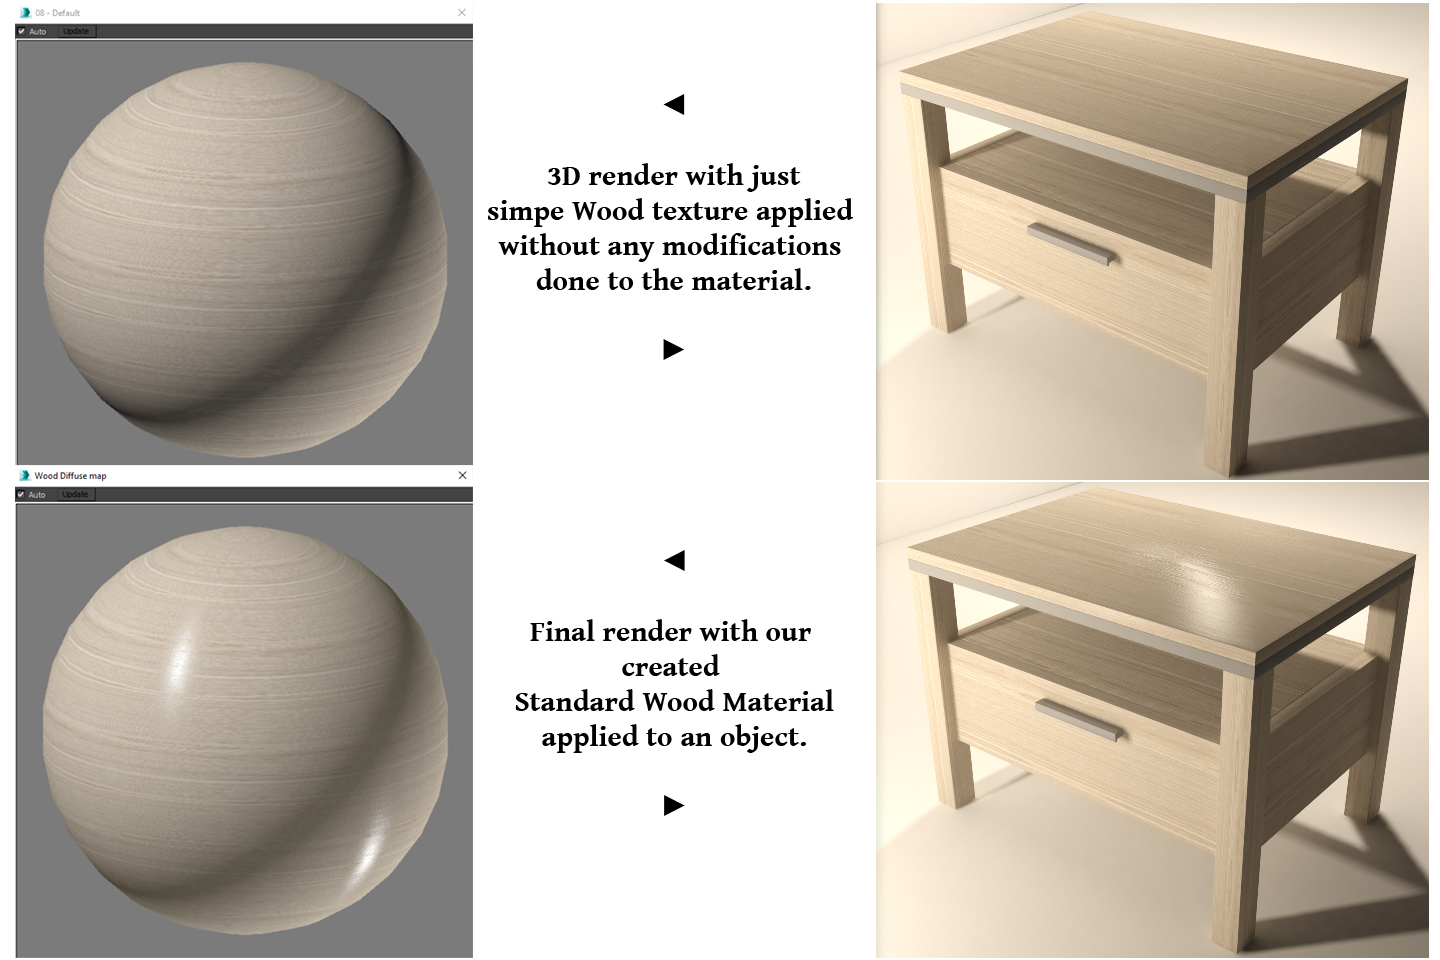 comparison of images with standard wood material and without